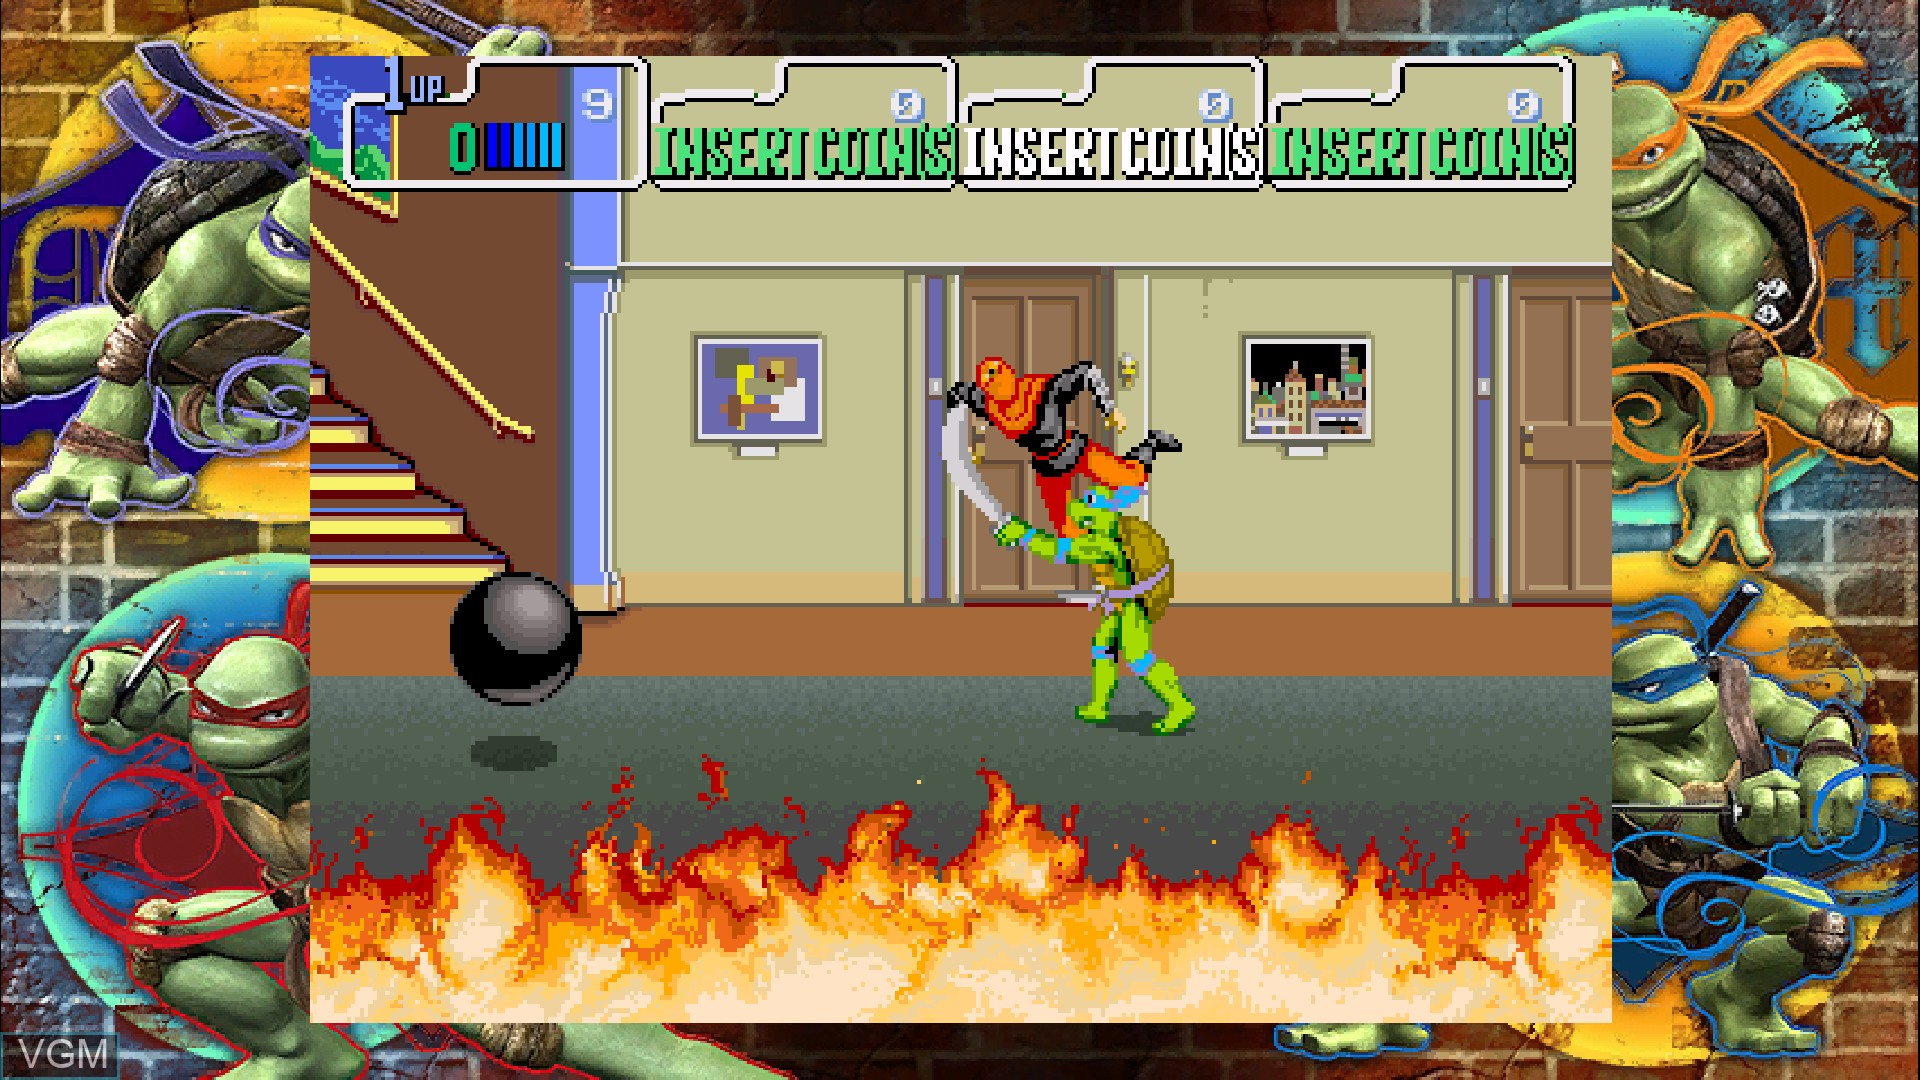 Teenage Mutant Ninja Turtles - 1989 Classic Arcade